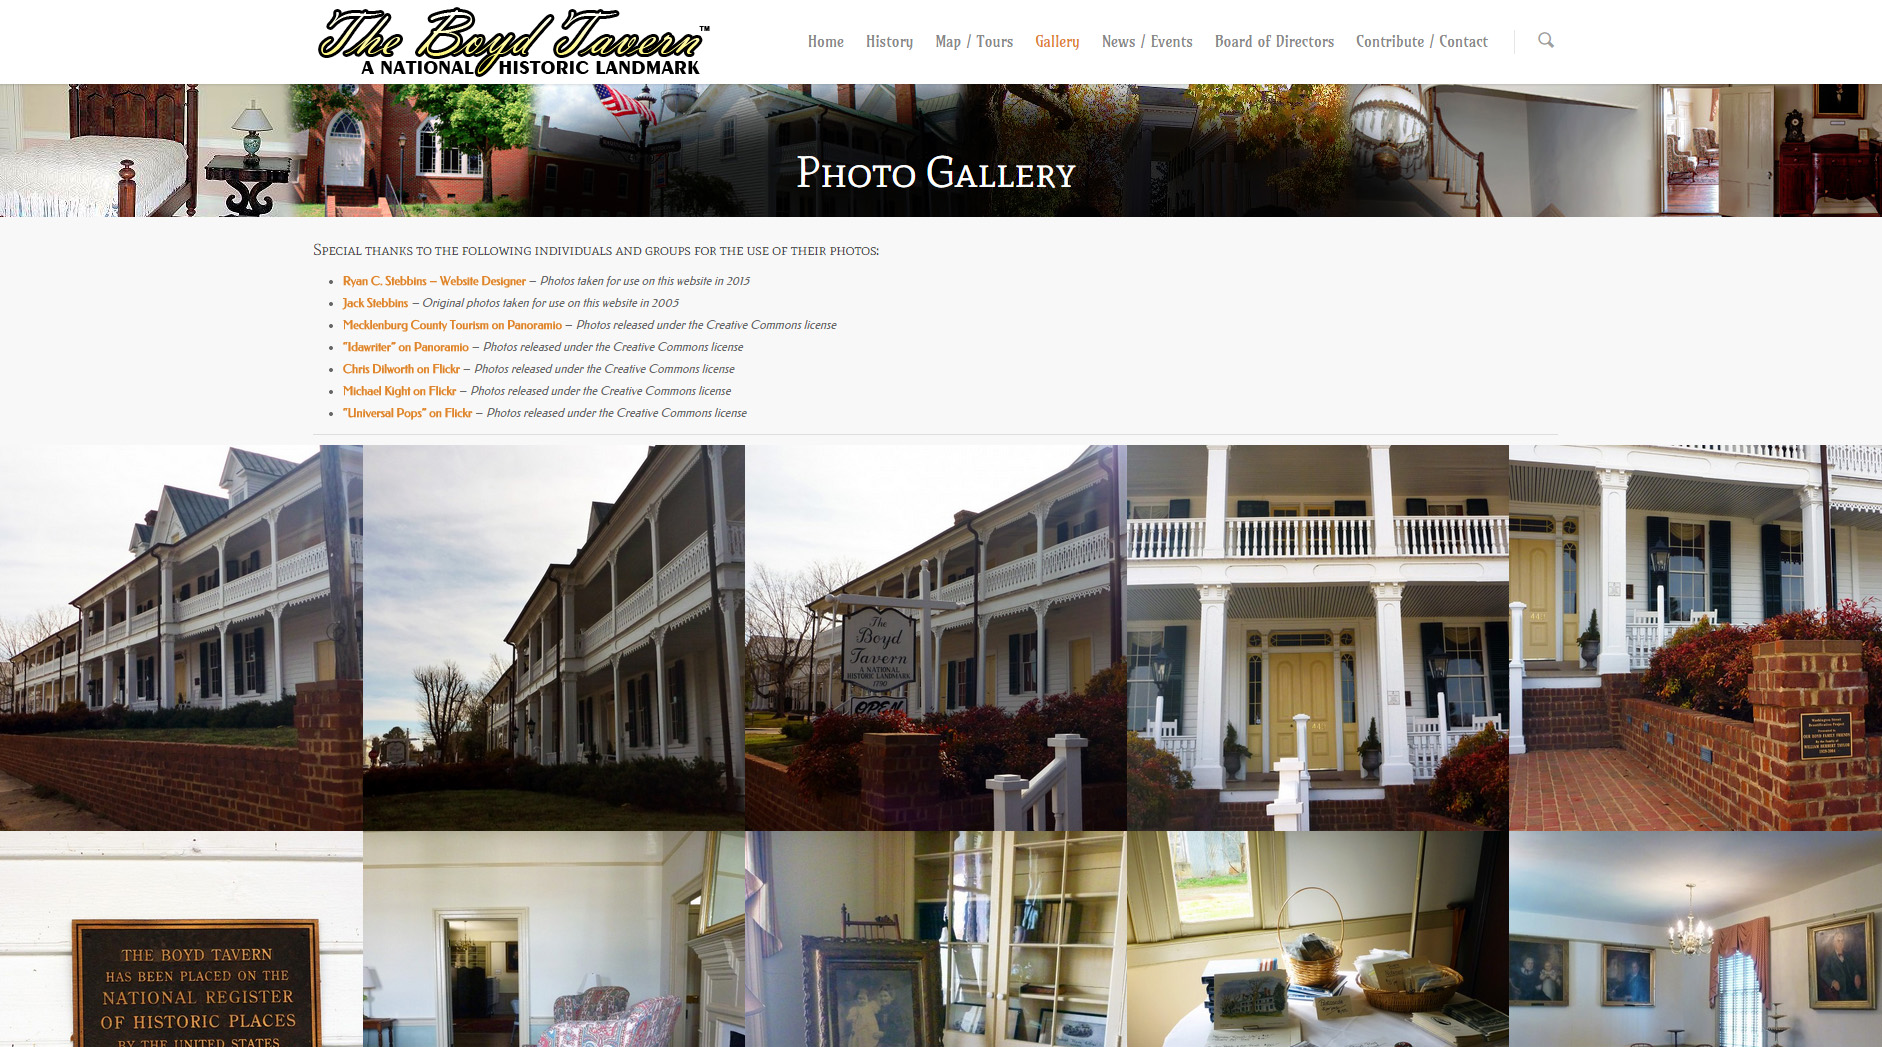 The photos page is fully responsive, with images that open in a lightbox window.